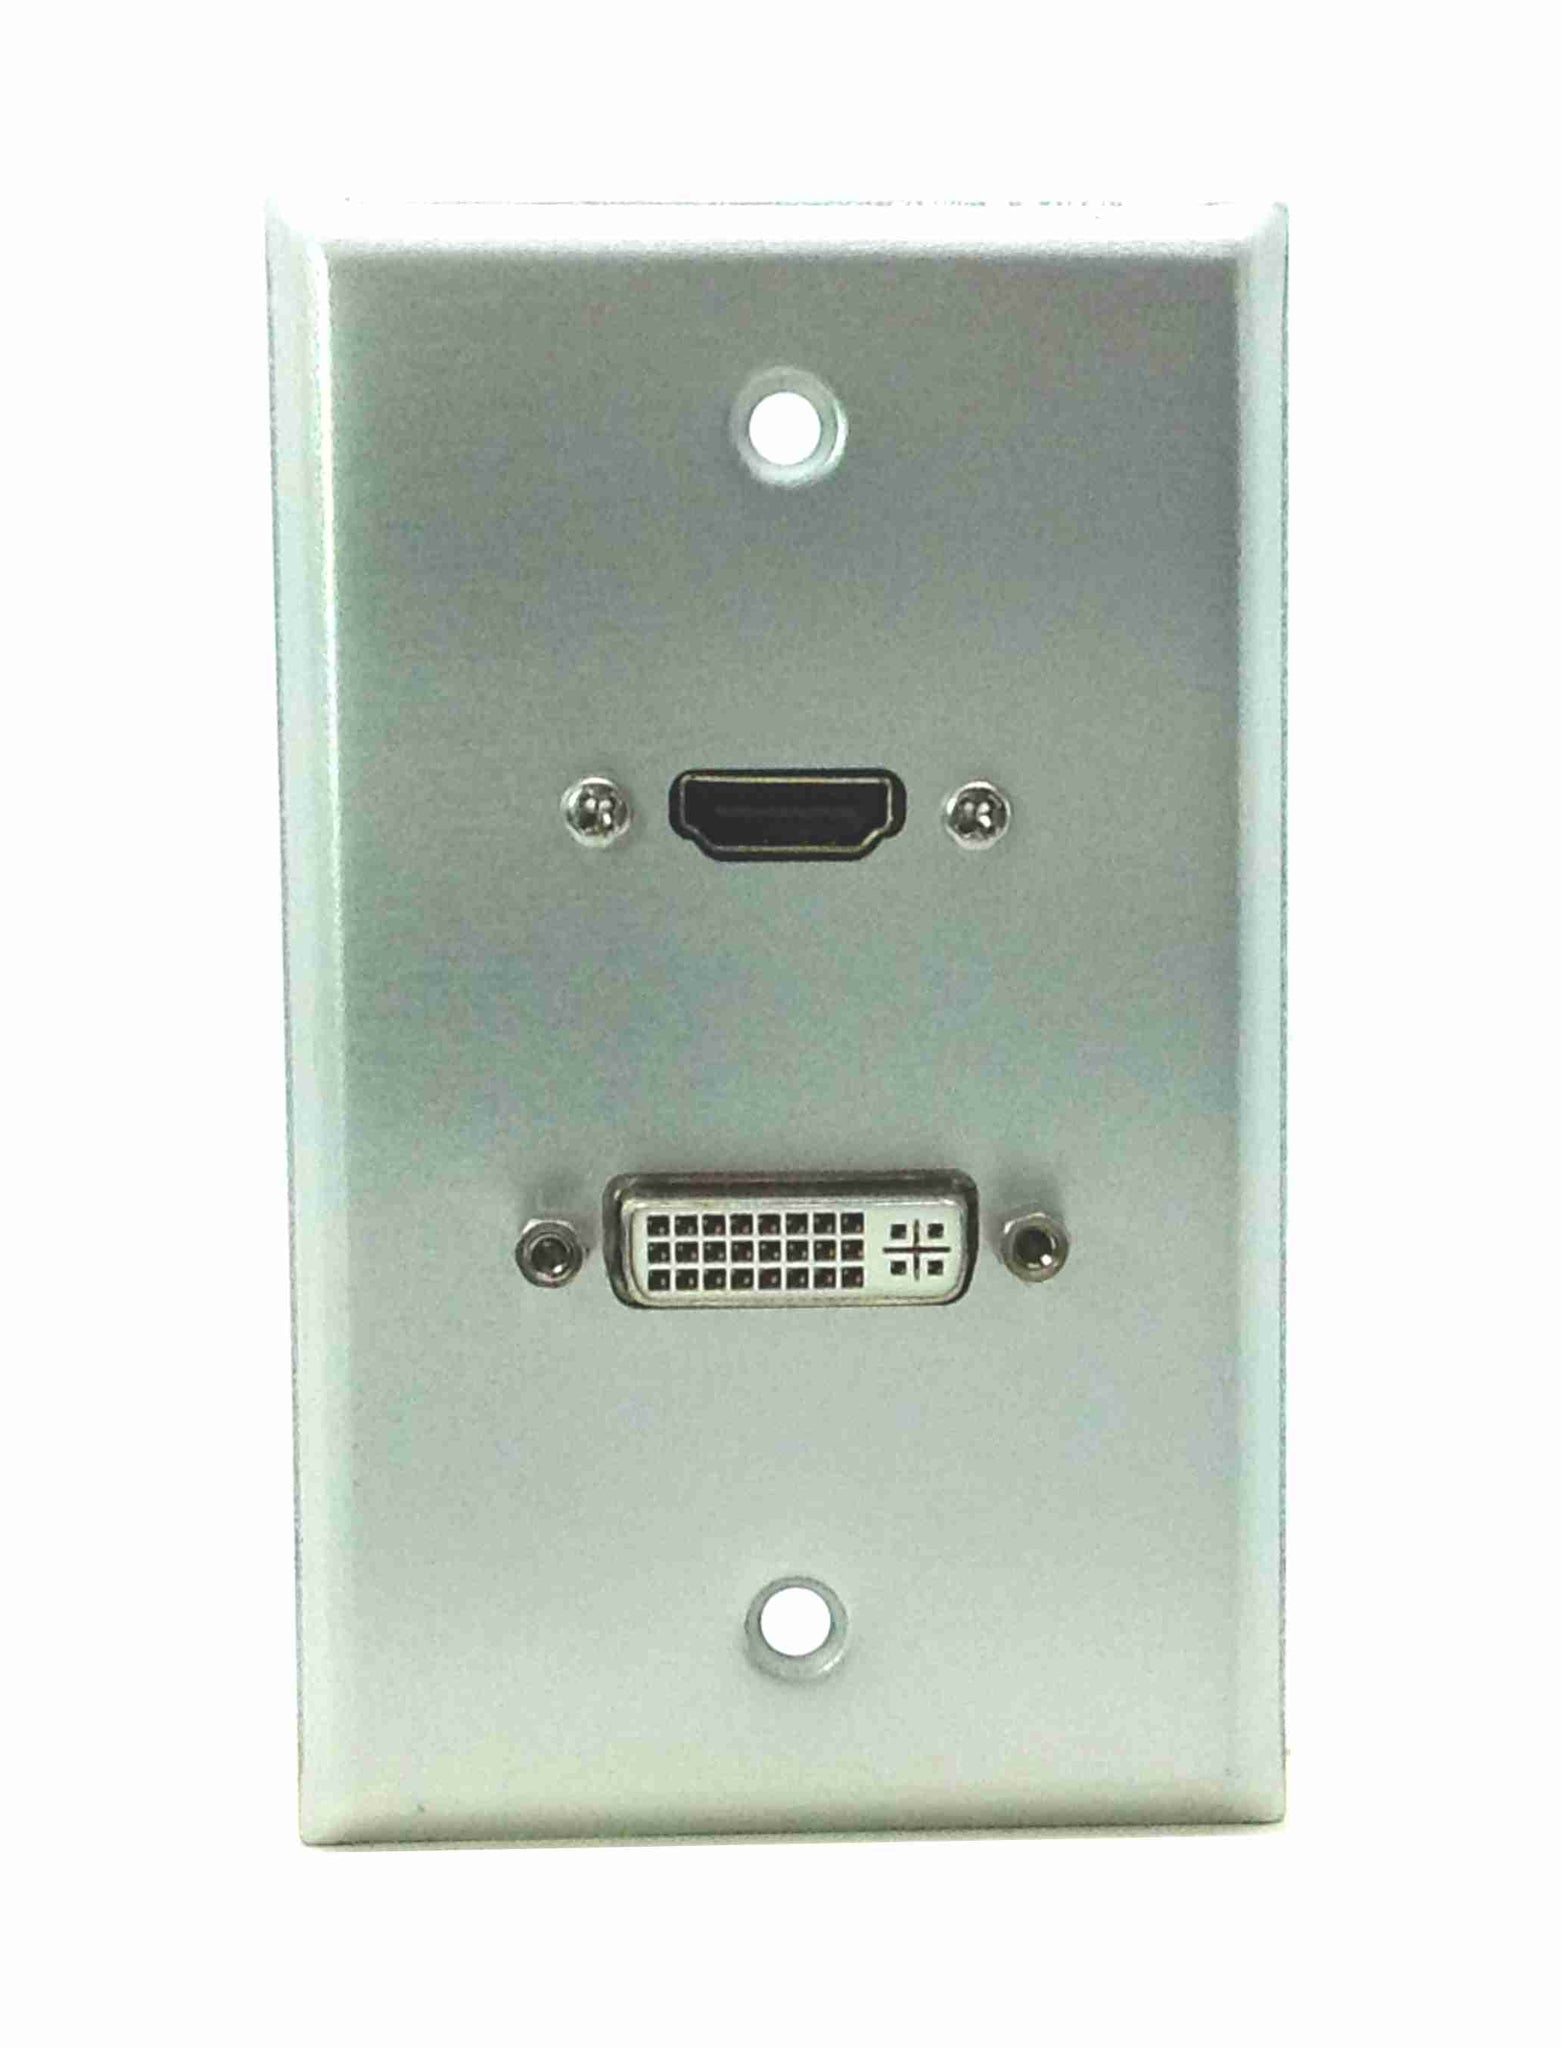 DVI-D Stainless Steel Wall Plate Single Gang HDMI